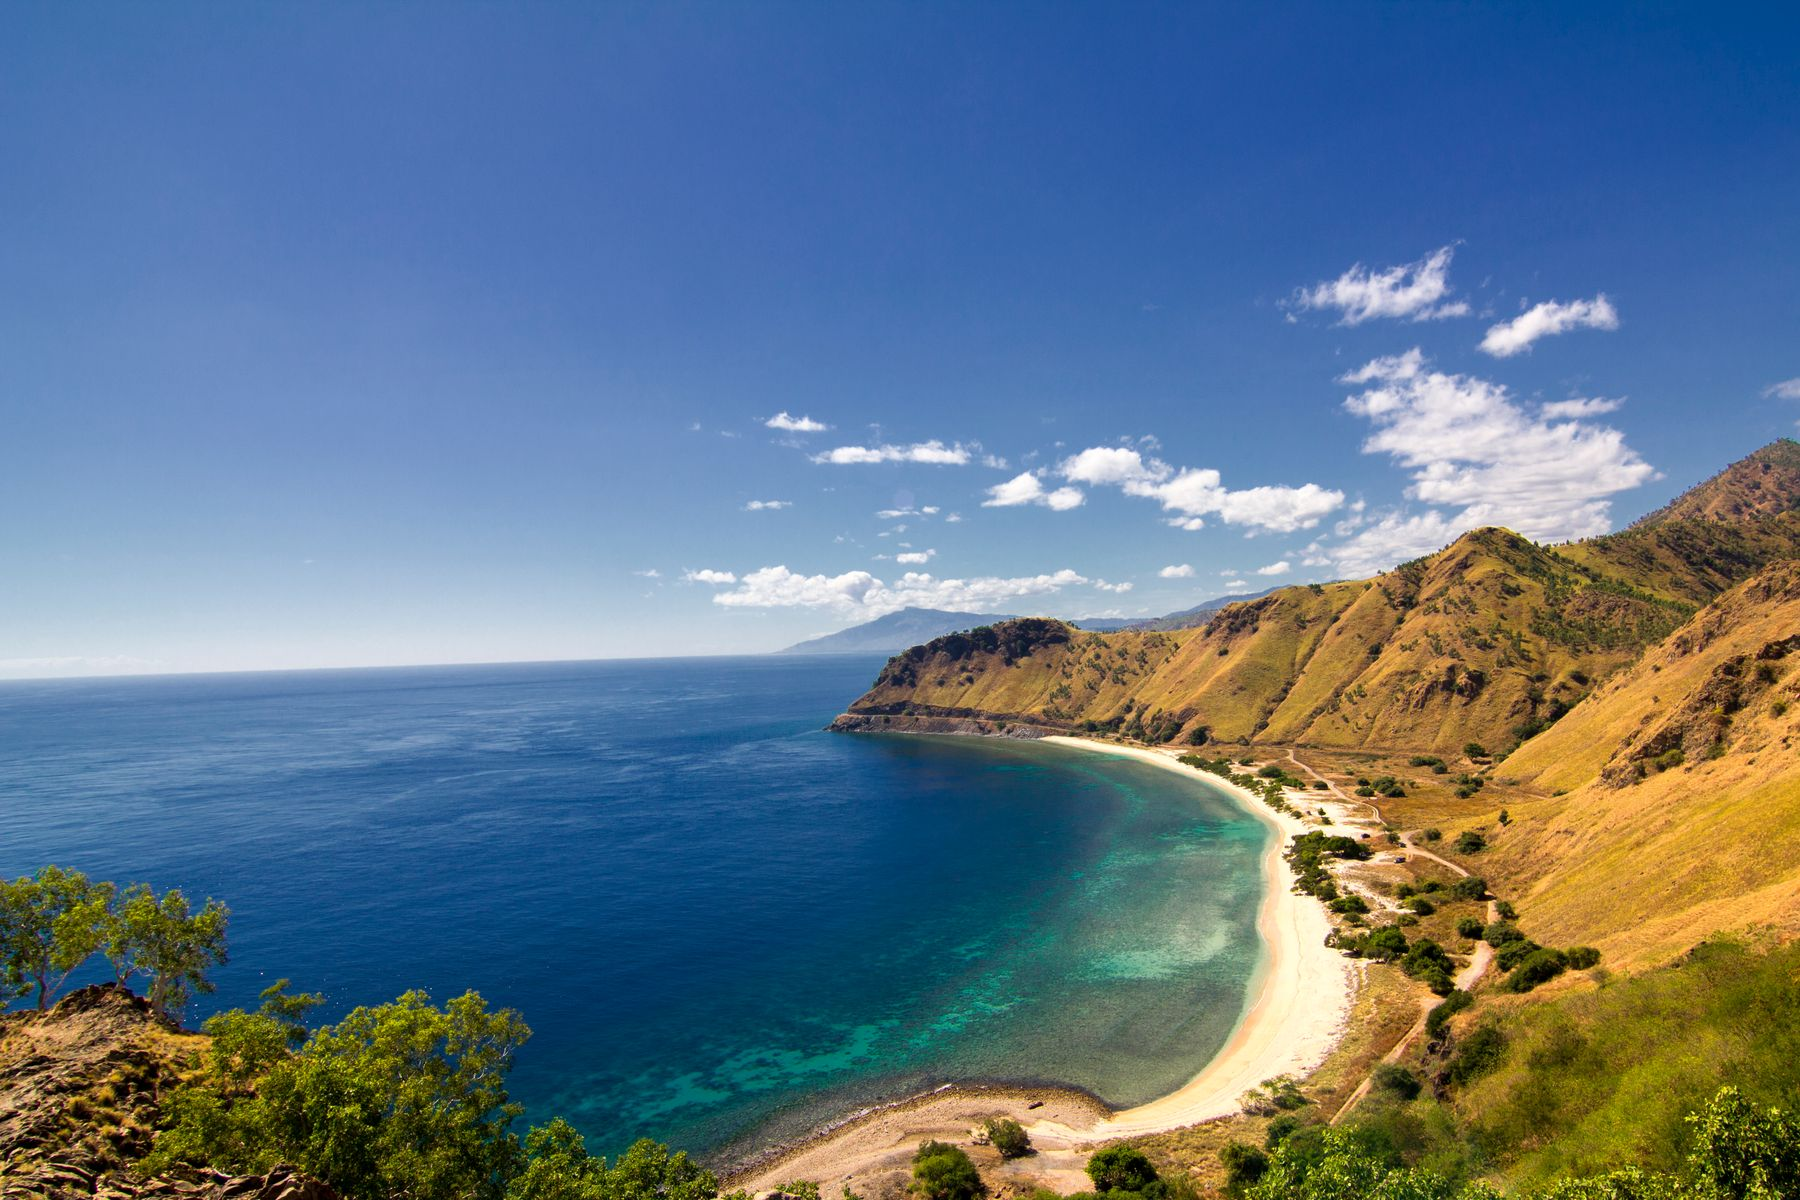 Mountains and coastline of Timor Leste or East Timor